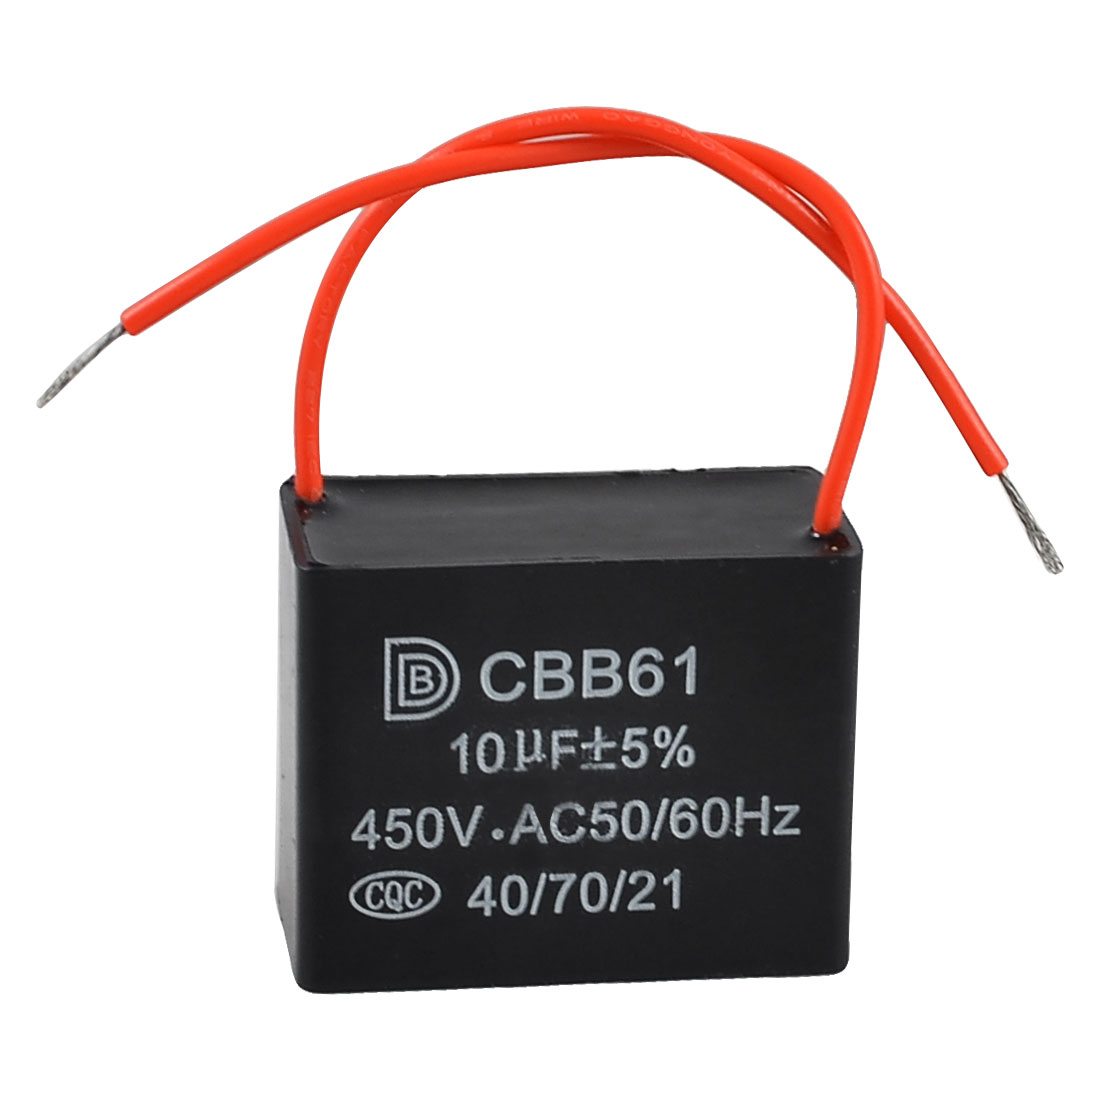 AC 450V 10uF 2 Red Connection Leads Motor Run Capacitor for Ceiling Fan